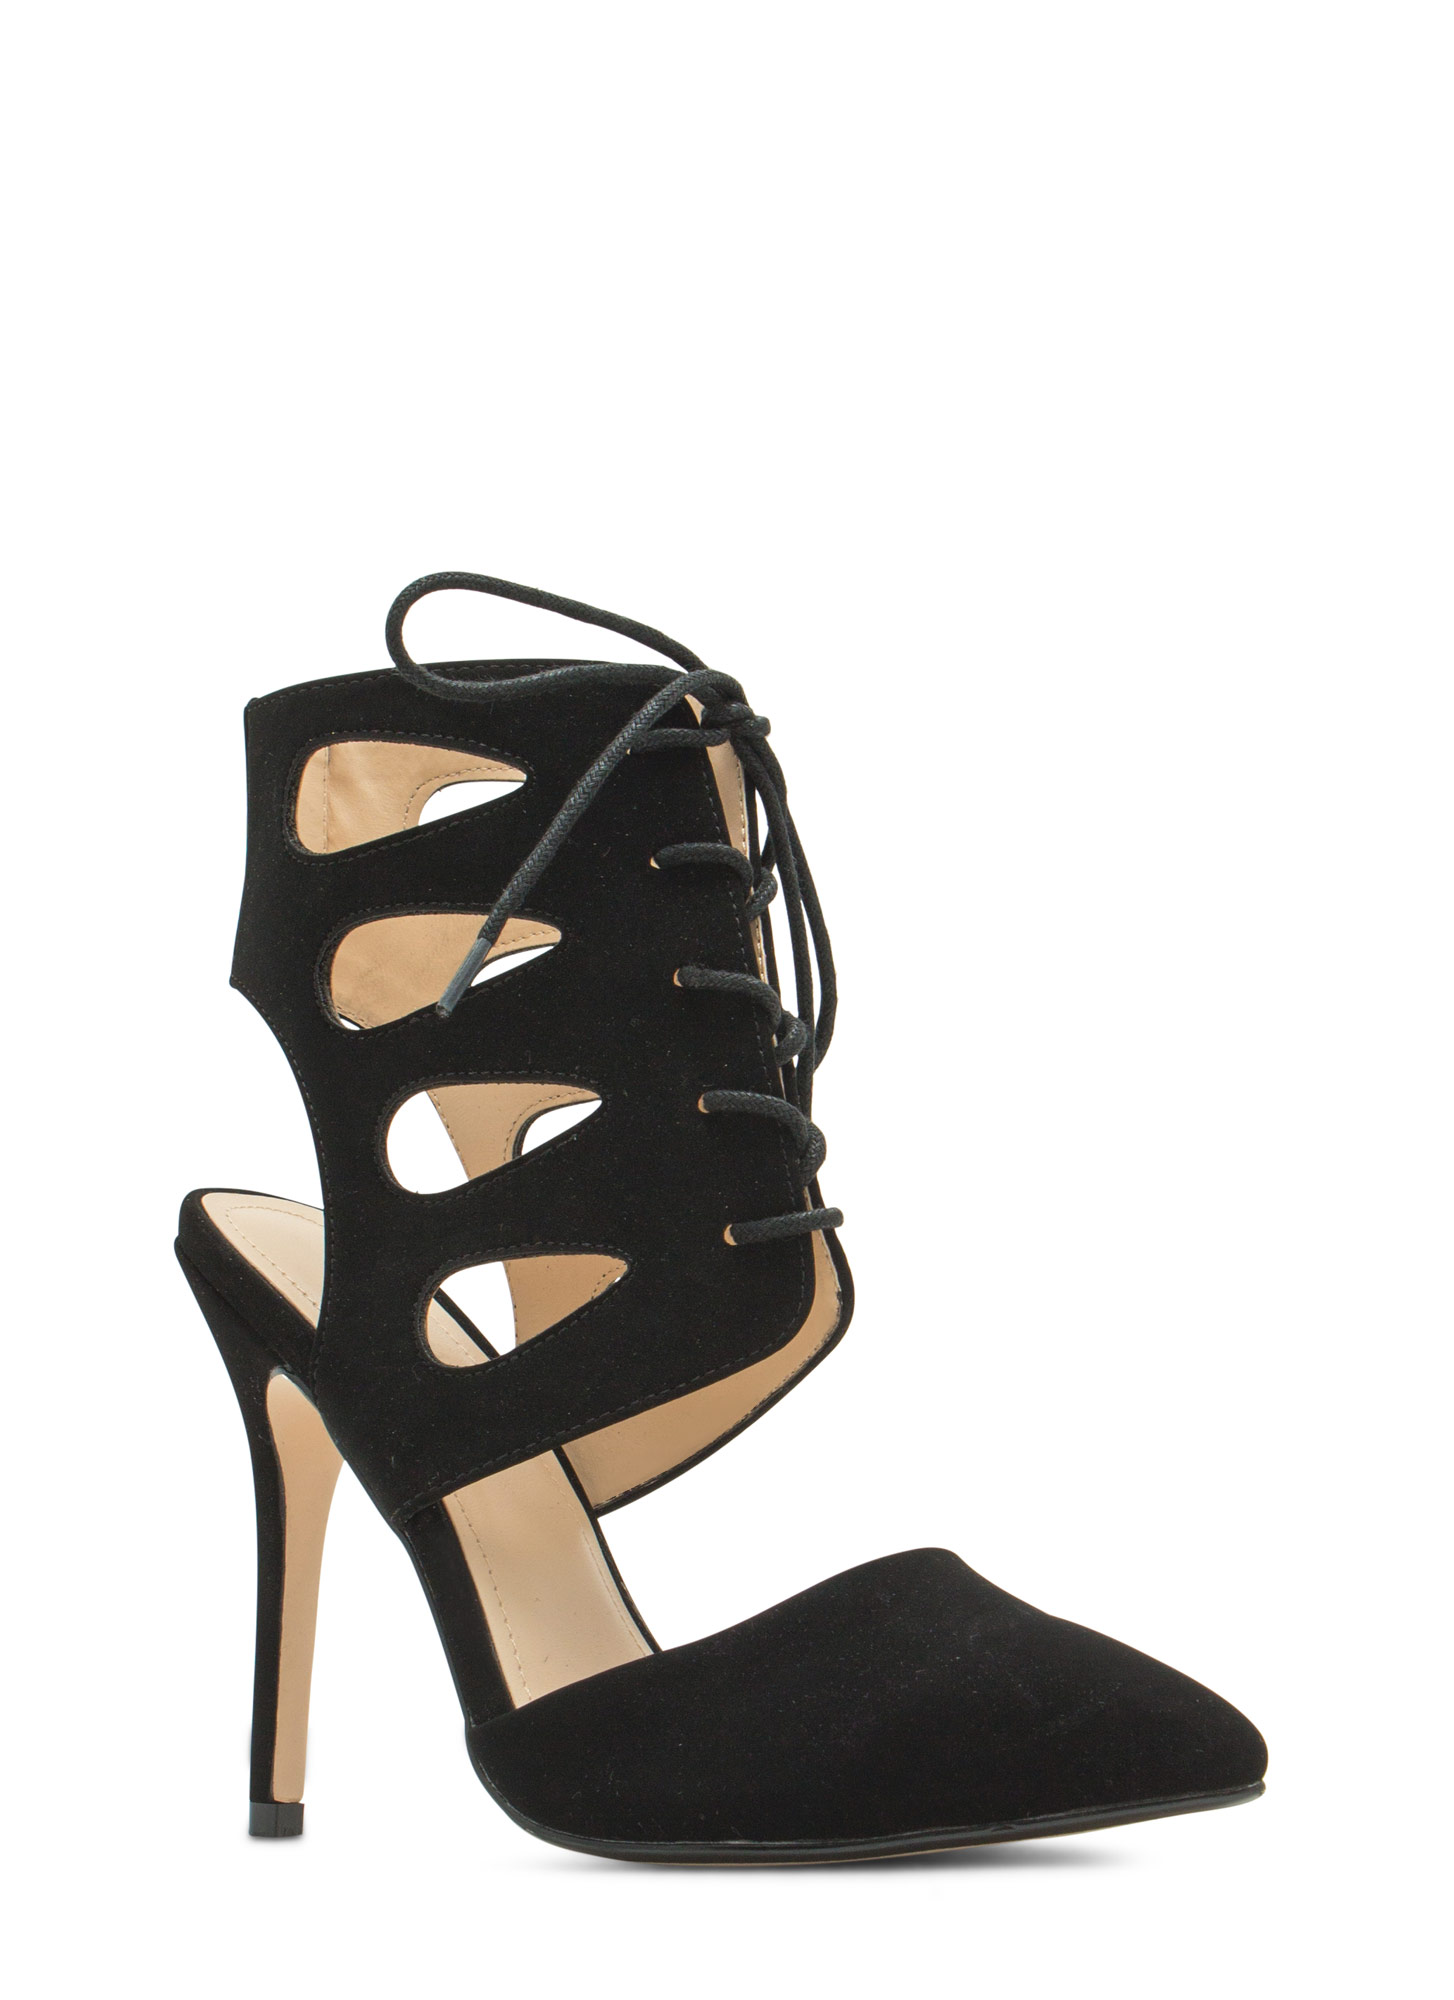 Teardrop Cut-Out Lace-Up Heels BLACK